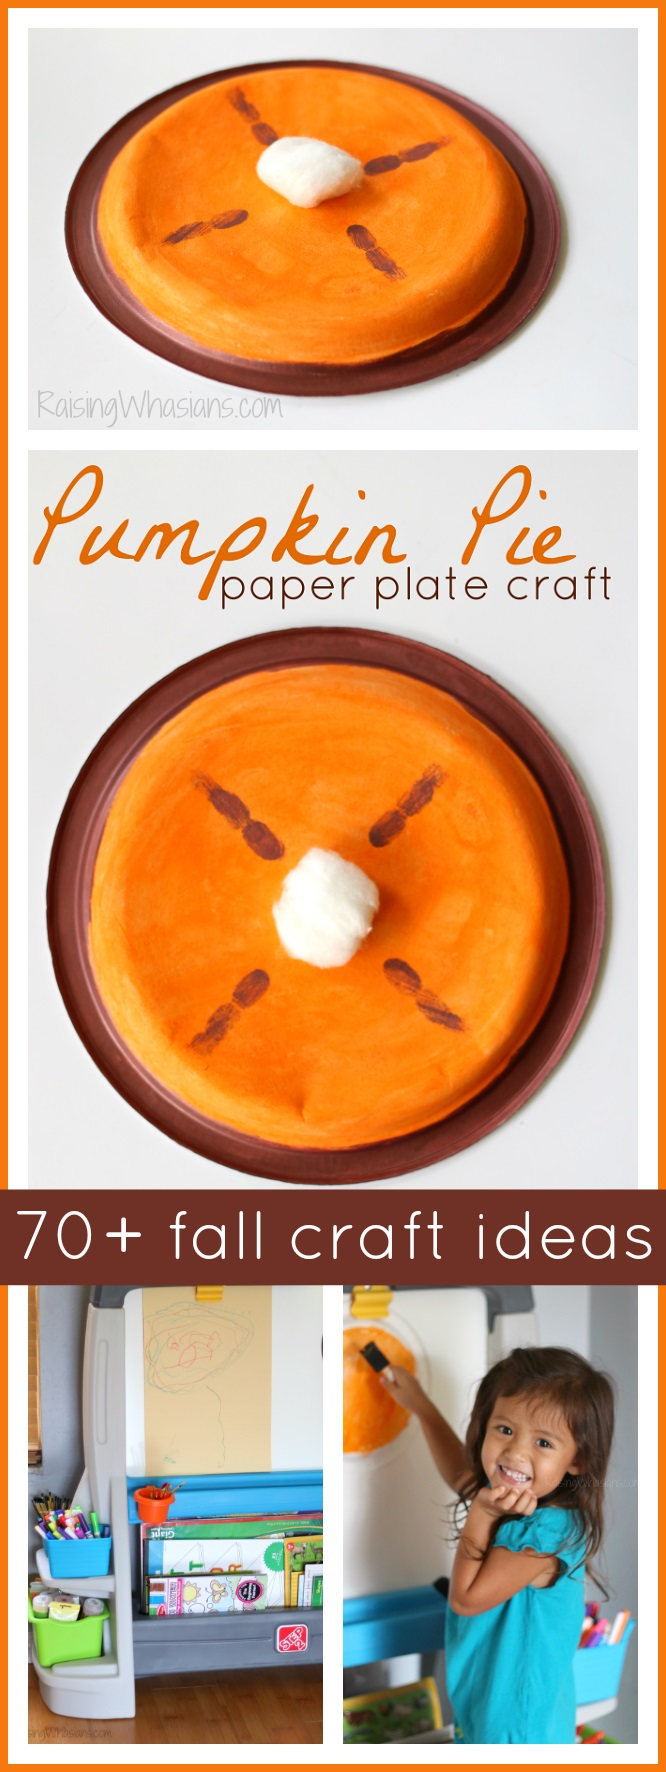 Pumpkin pie craft fall craft ideas